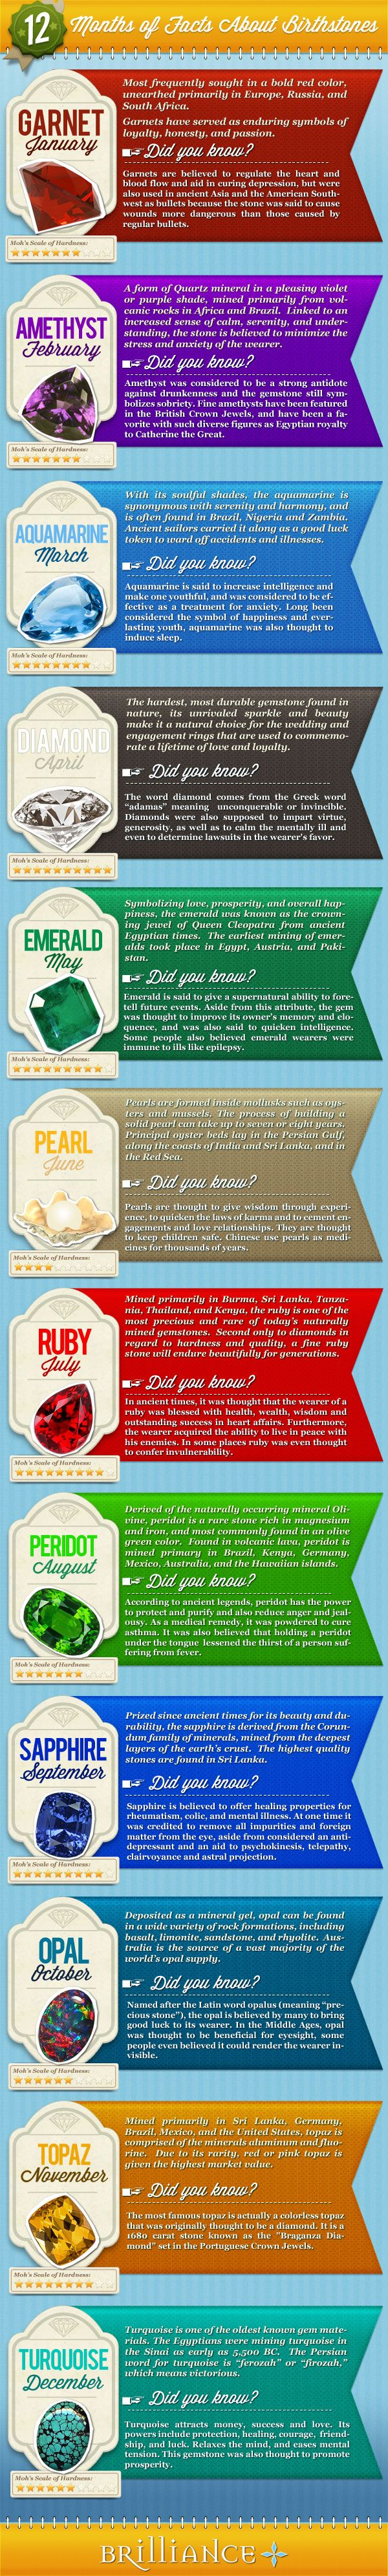 Birthstones By Month #Infographic | #Aries & #April Love! Where You At?